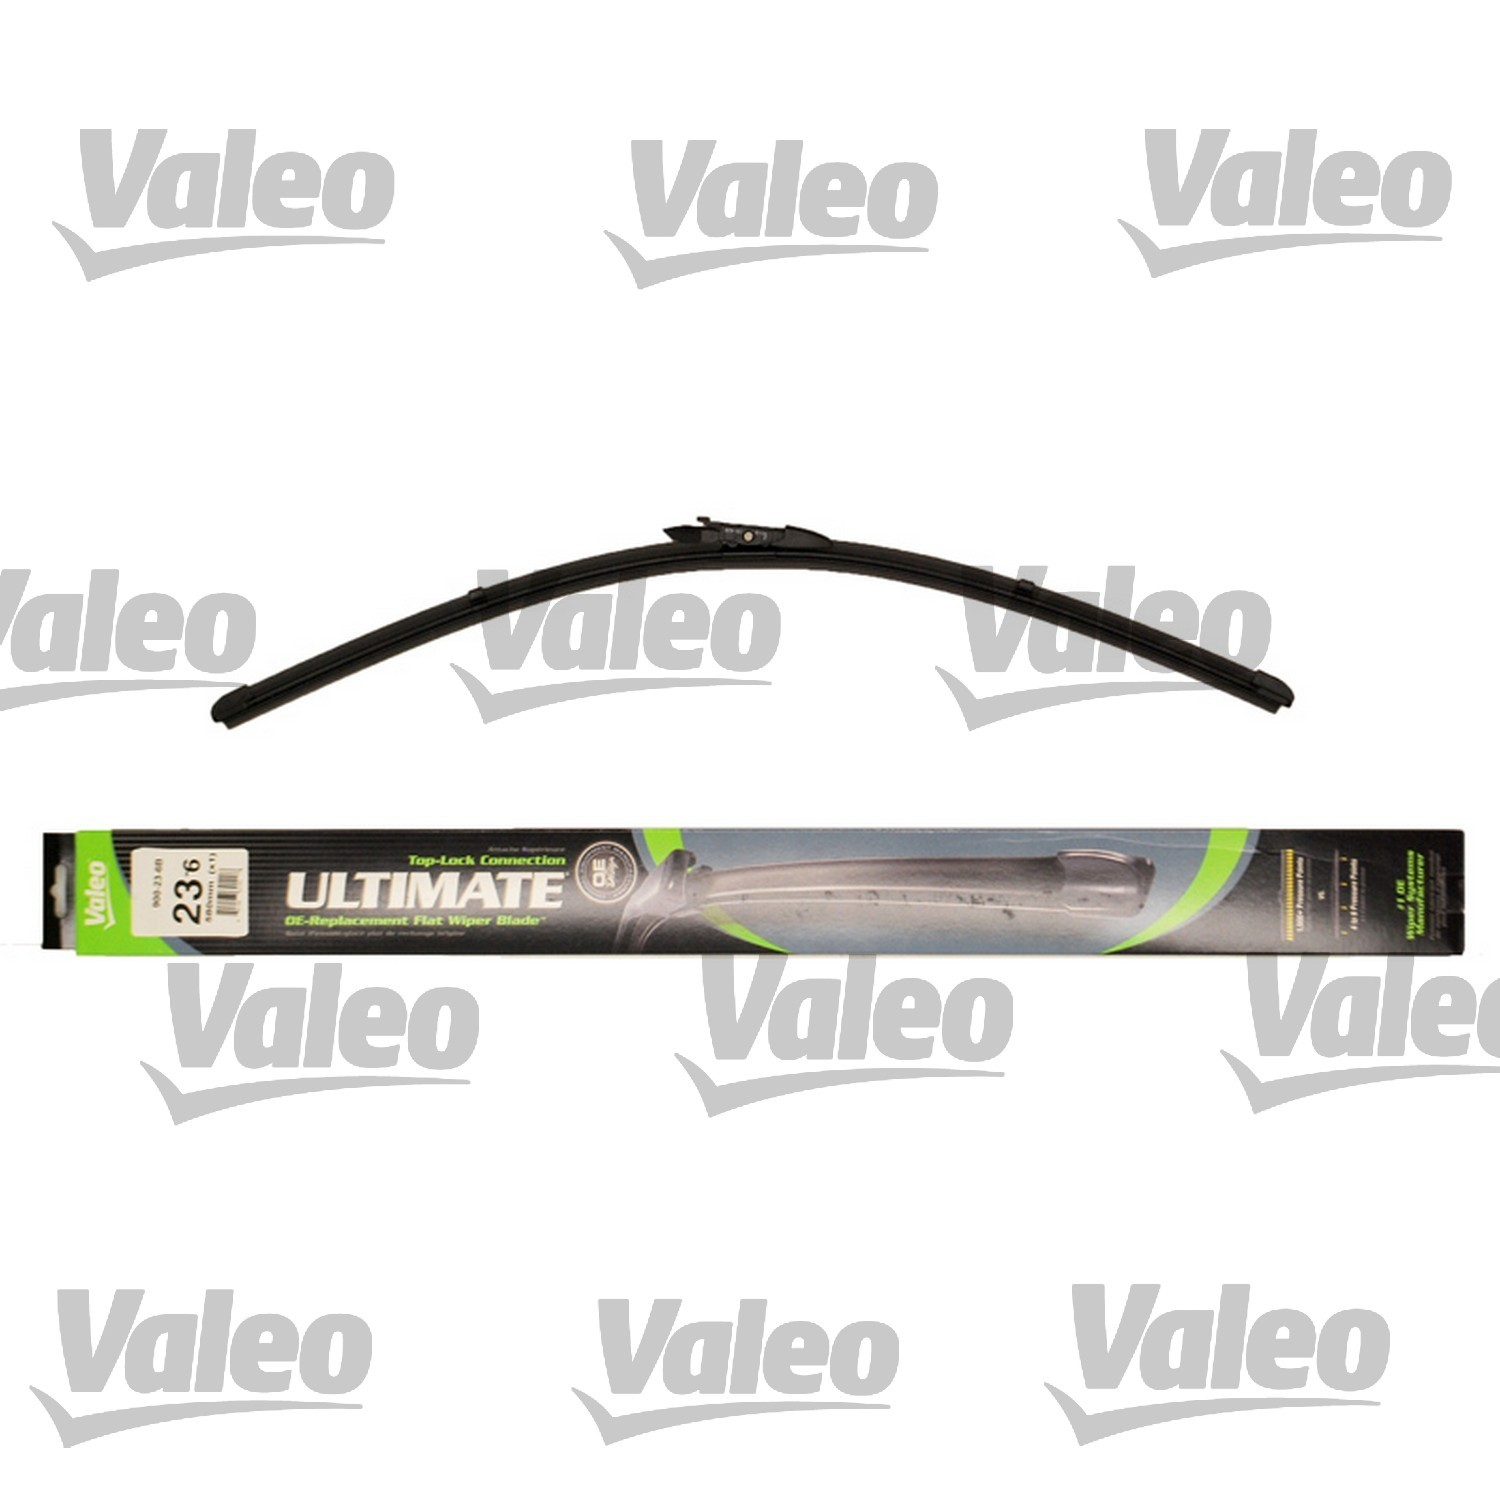 VALEO - Ultimate Wiper Blade - VEO 900-23-6B